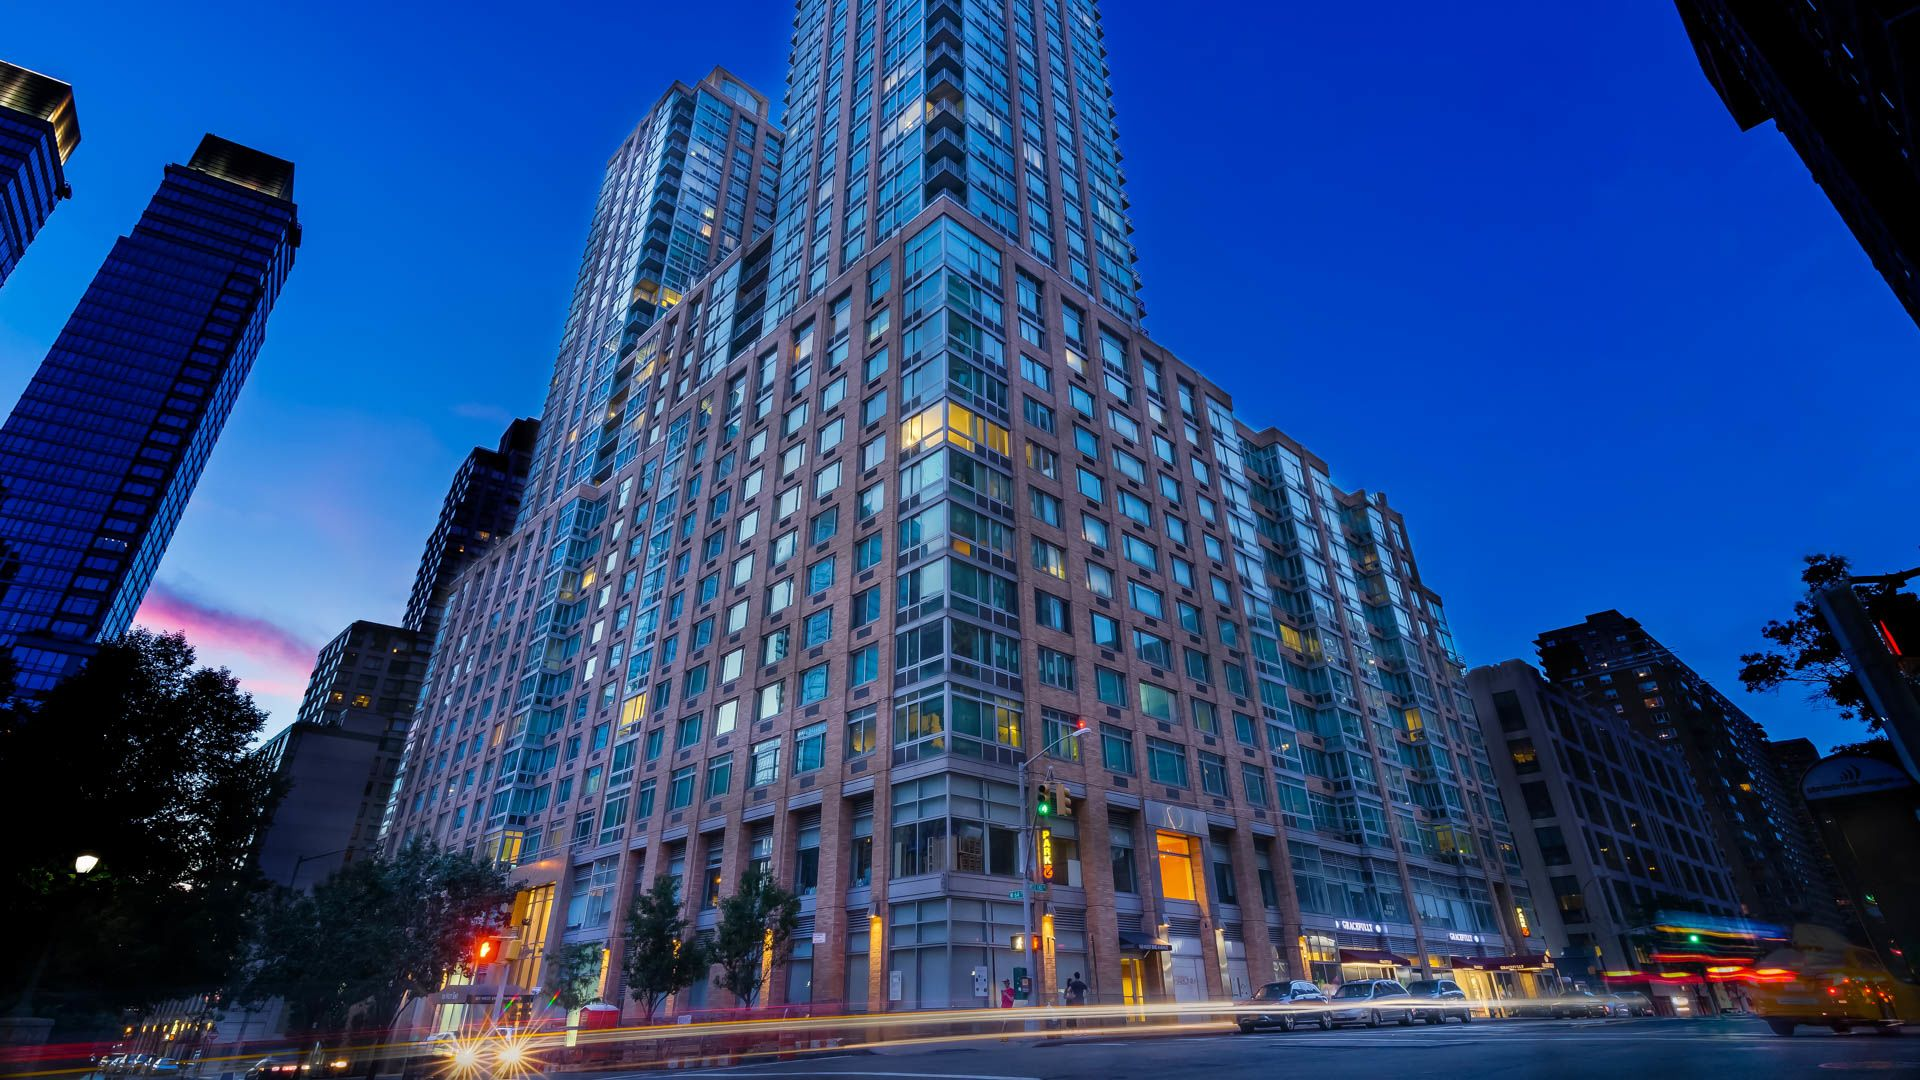 Here Are 4 Top Luxury Apartment Buildings In New York City